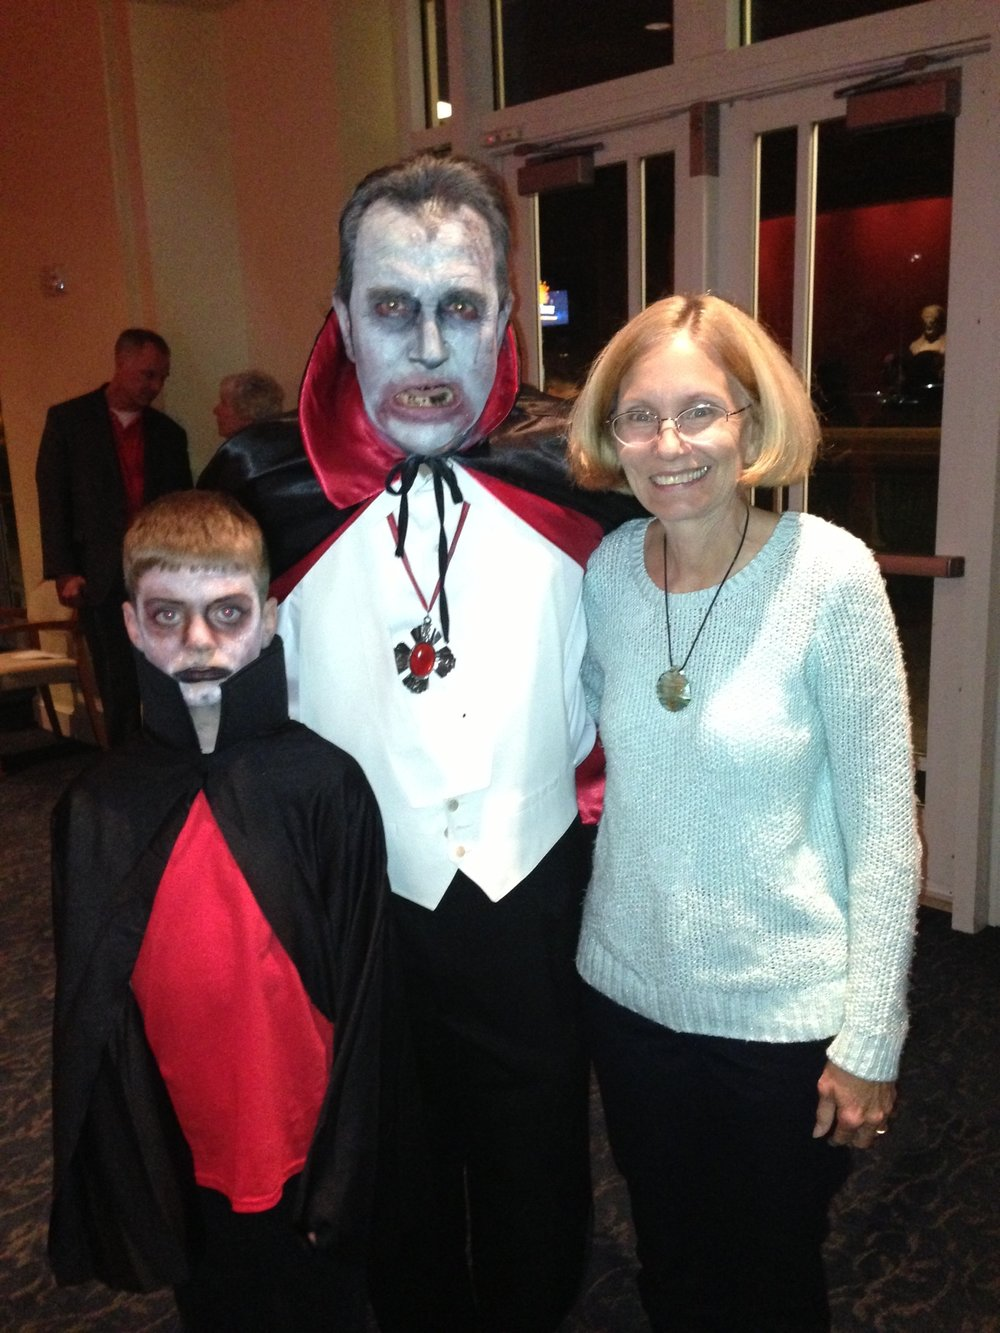 Kenny and Timothy pictured with Glenn member Barbara McClure at Scary Ride.